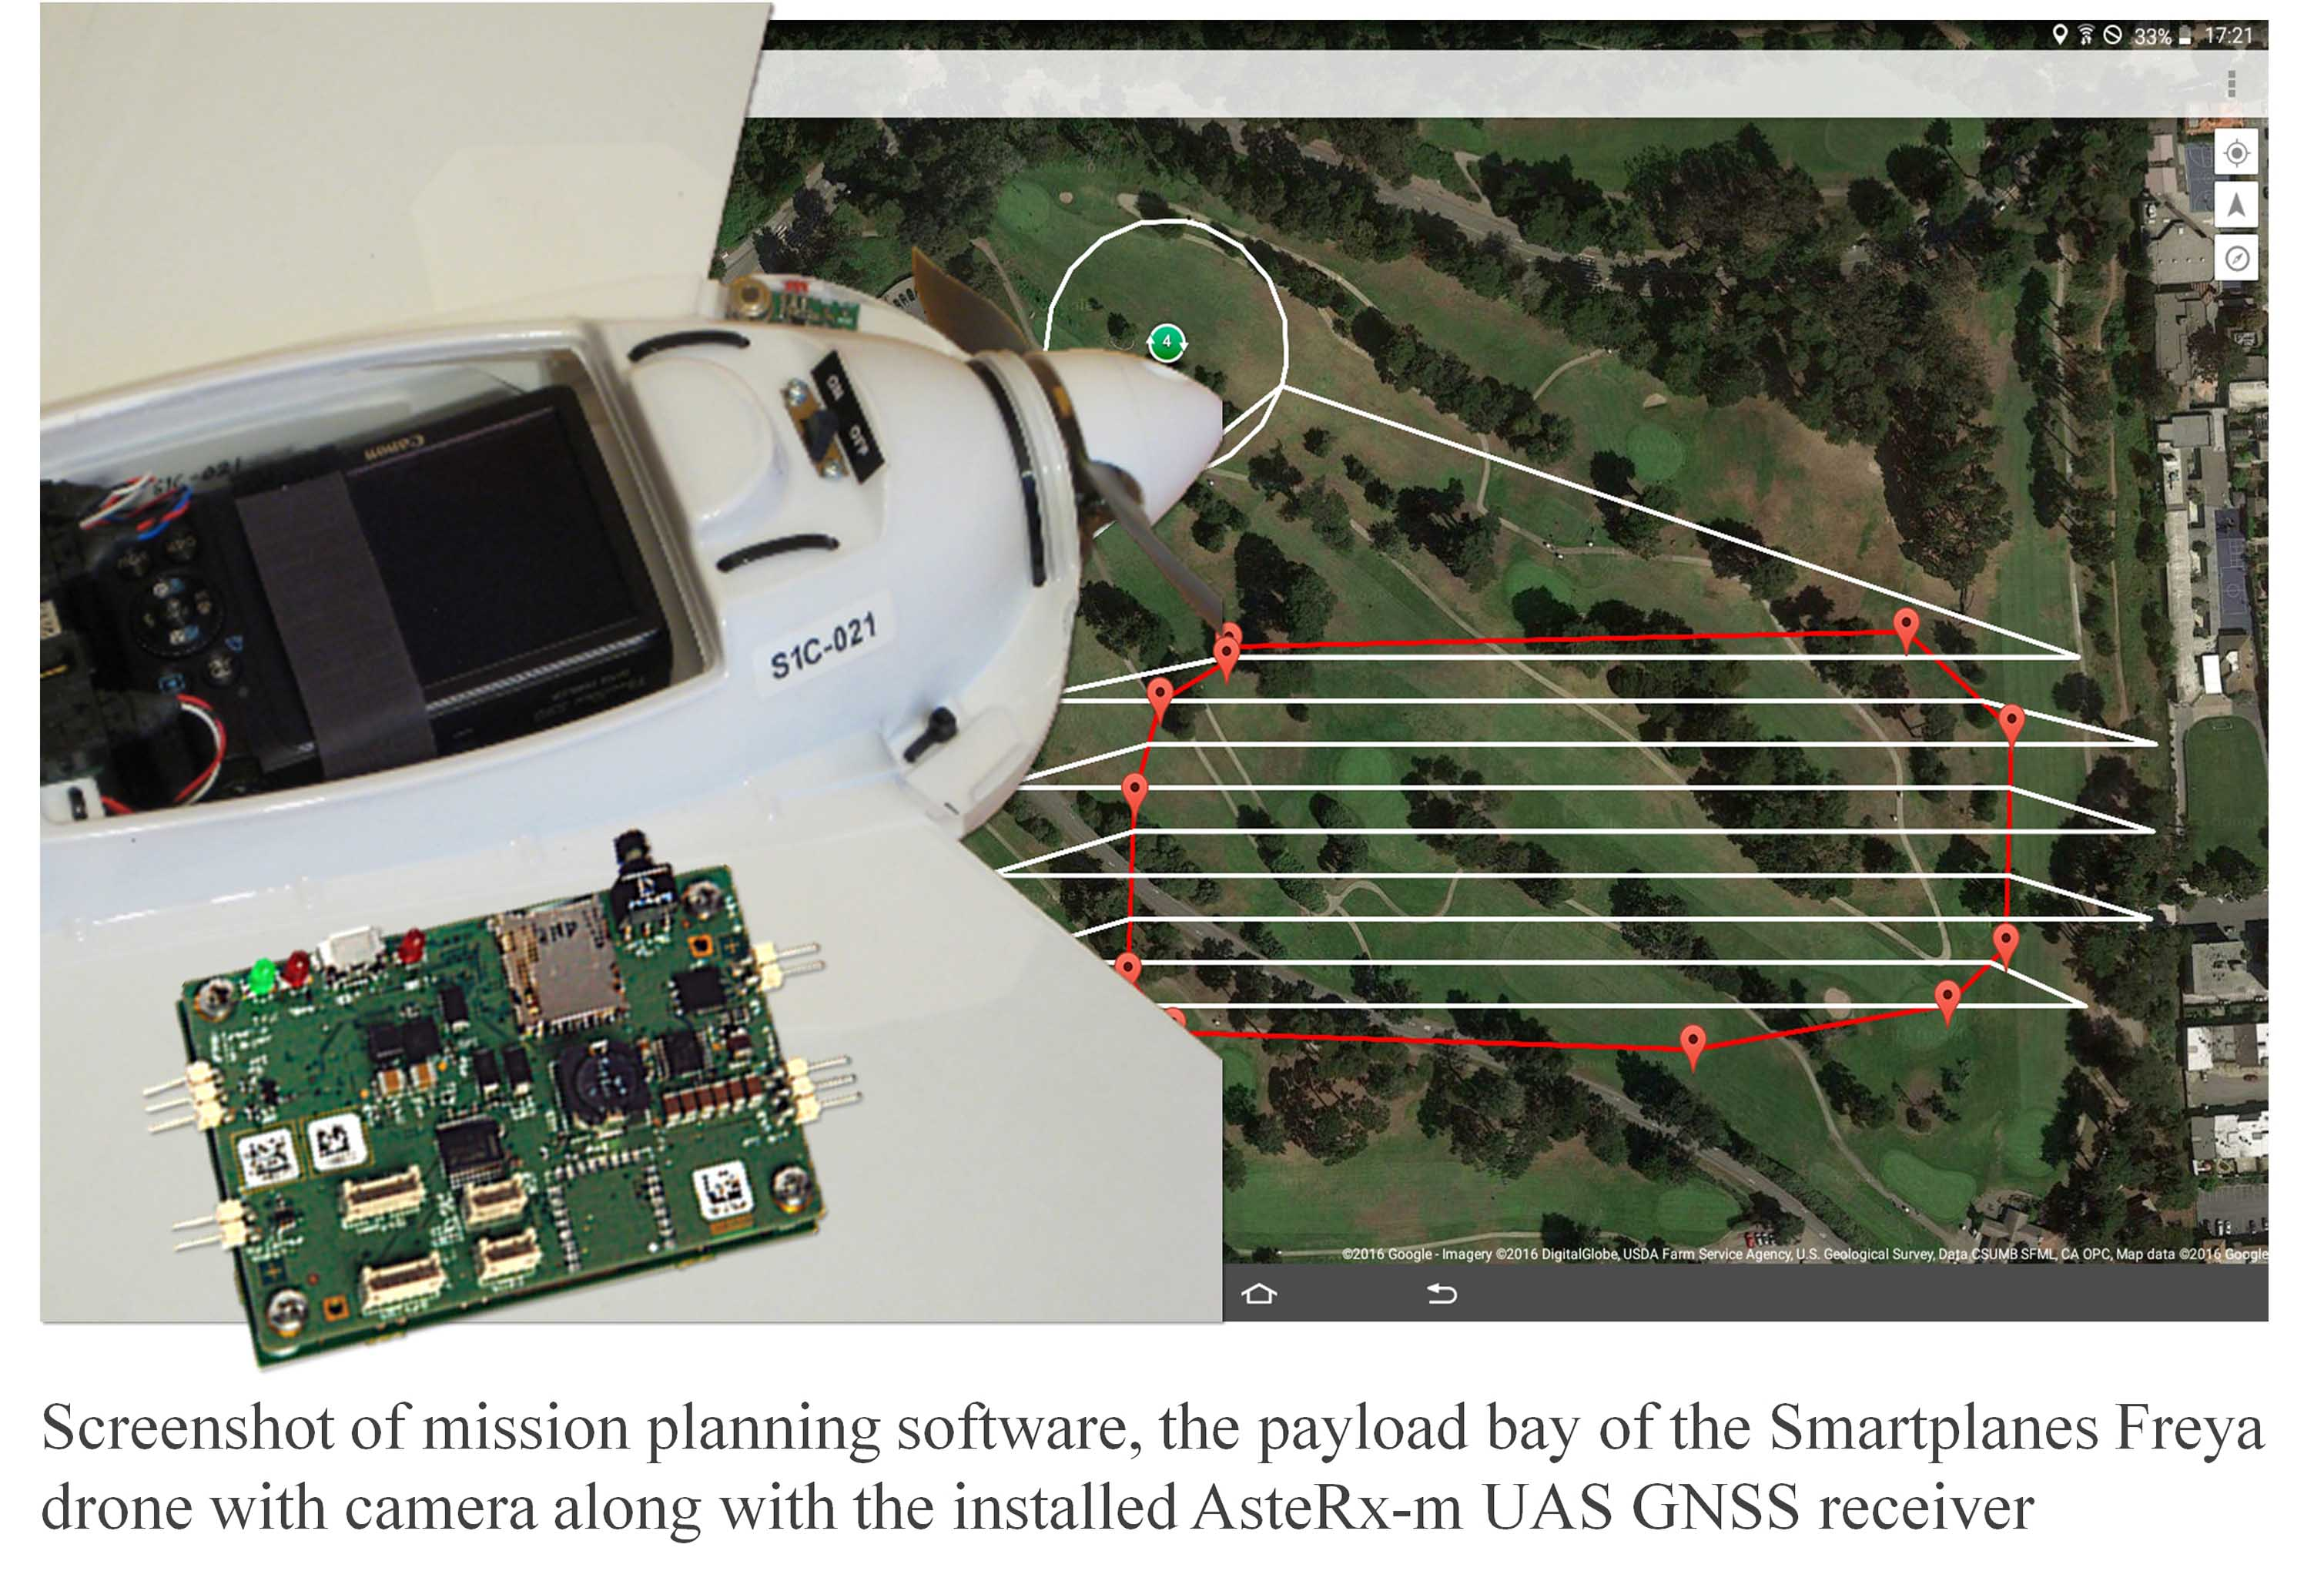 Septentrio_GNSS_accurate_reliable_receiver_bluetooth_PolaRx_AsteRx_Altus_Insight_Inshite_GeoTagZ_AsteRx-m_UAS_AsteRxm_AsteRx-m_UAV_Smartplanes_Drone_Freya_camera_surveying_no_GIS_sarah_dean_Inshite_Insight_RTK_accuracy_AsteRx-m_Georeferencing_geo-和借鑒